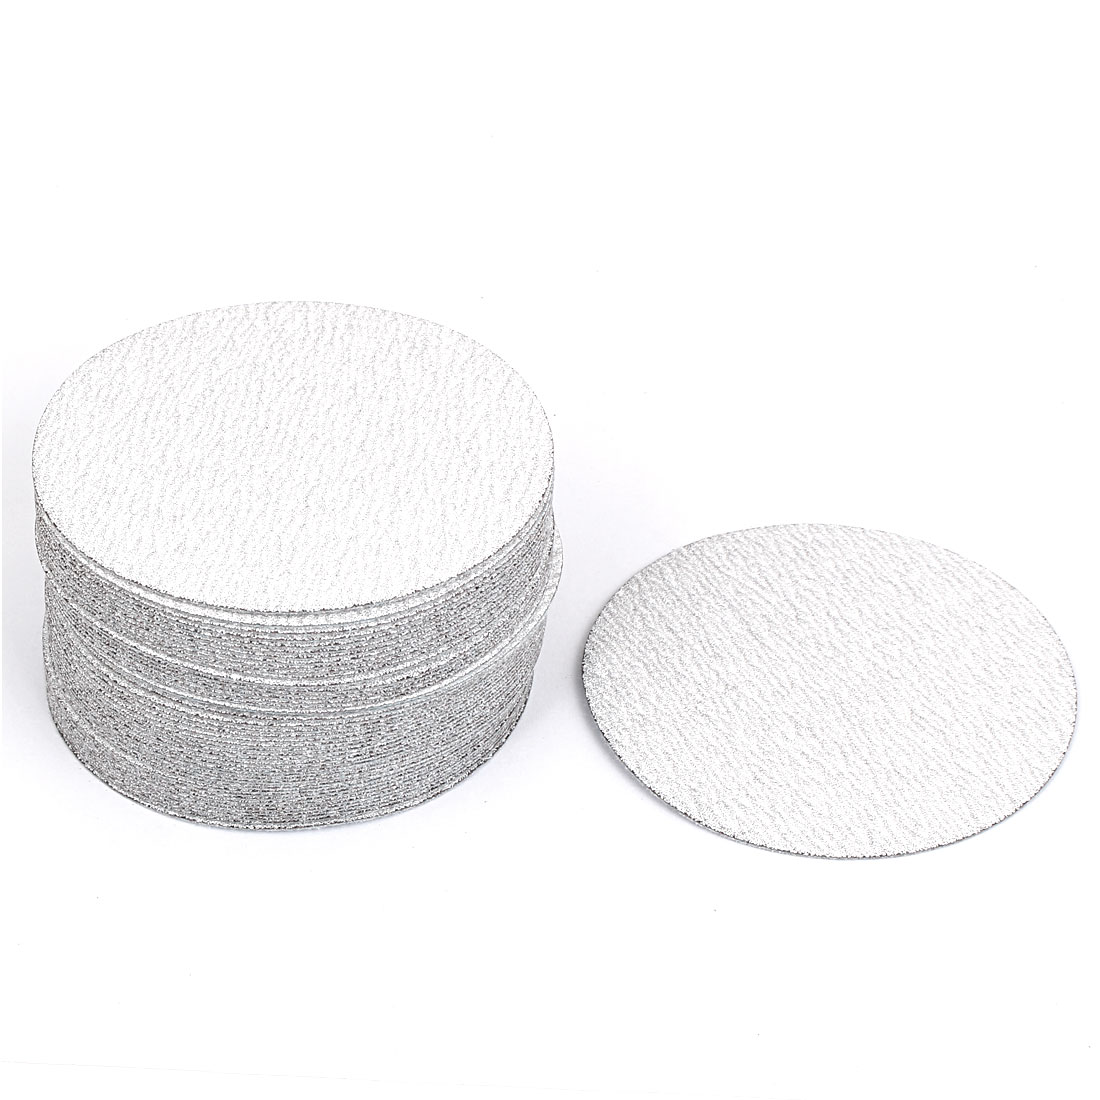 "4"" Dia Polishing Dry Abrasive Sanding Sandpaper Sheet Disc 180 Grit 50 Pcs"